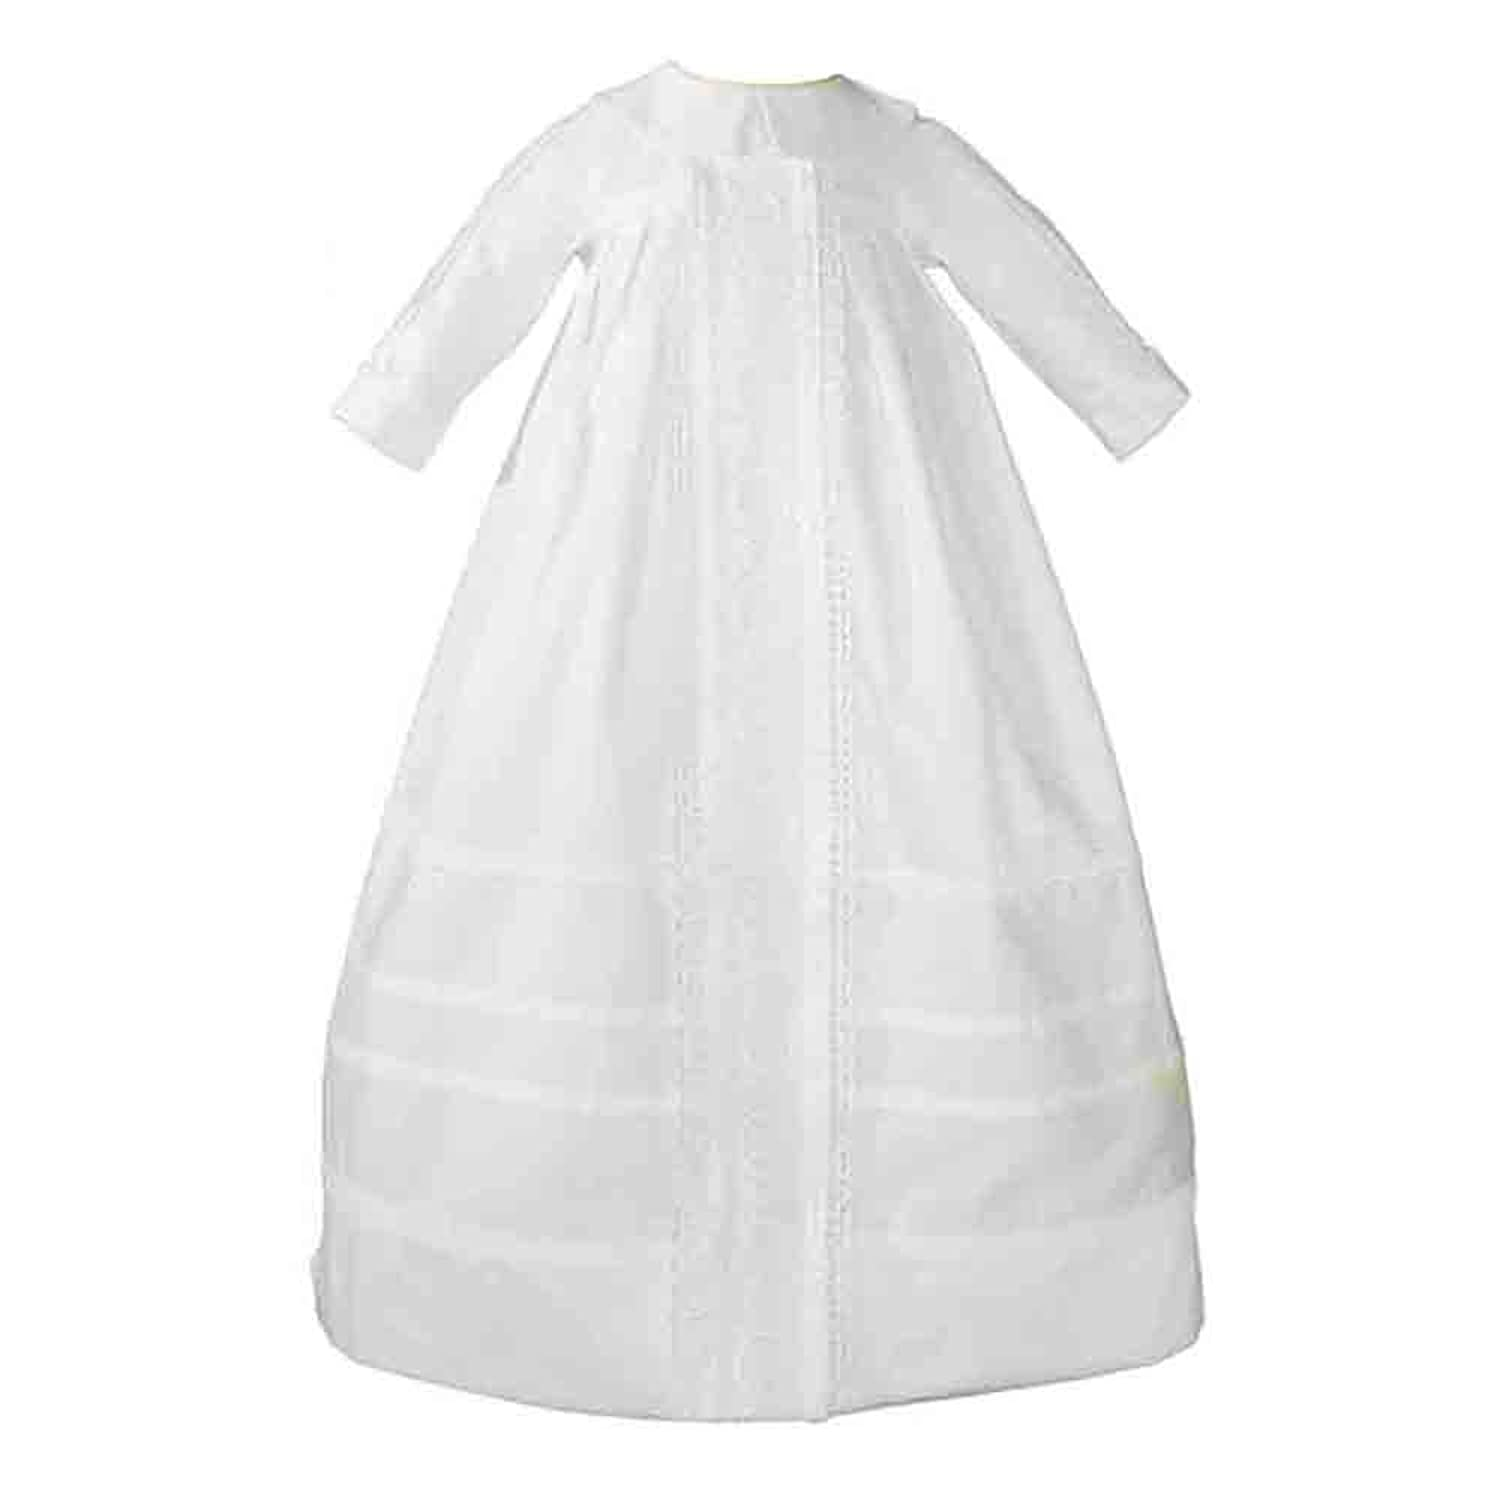 Cotton Sateen Long Sleeves Christening Gown Baptism Gown with Venice Lace